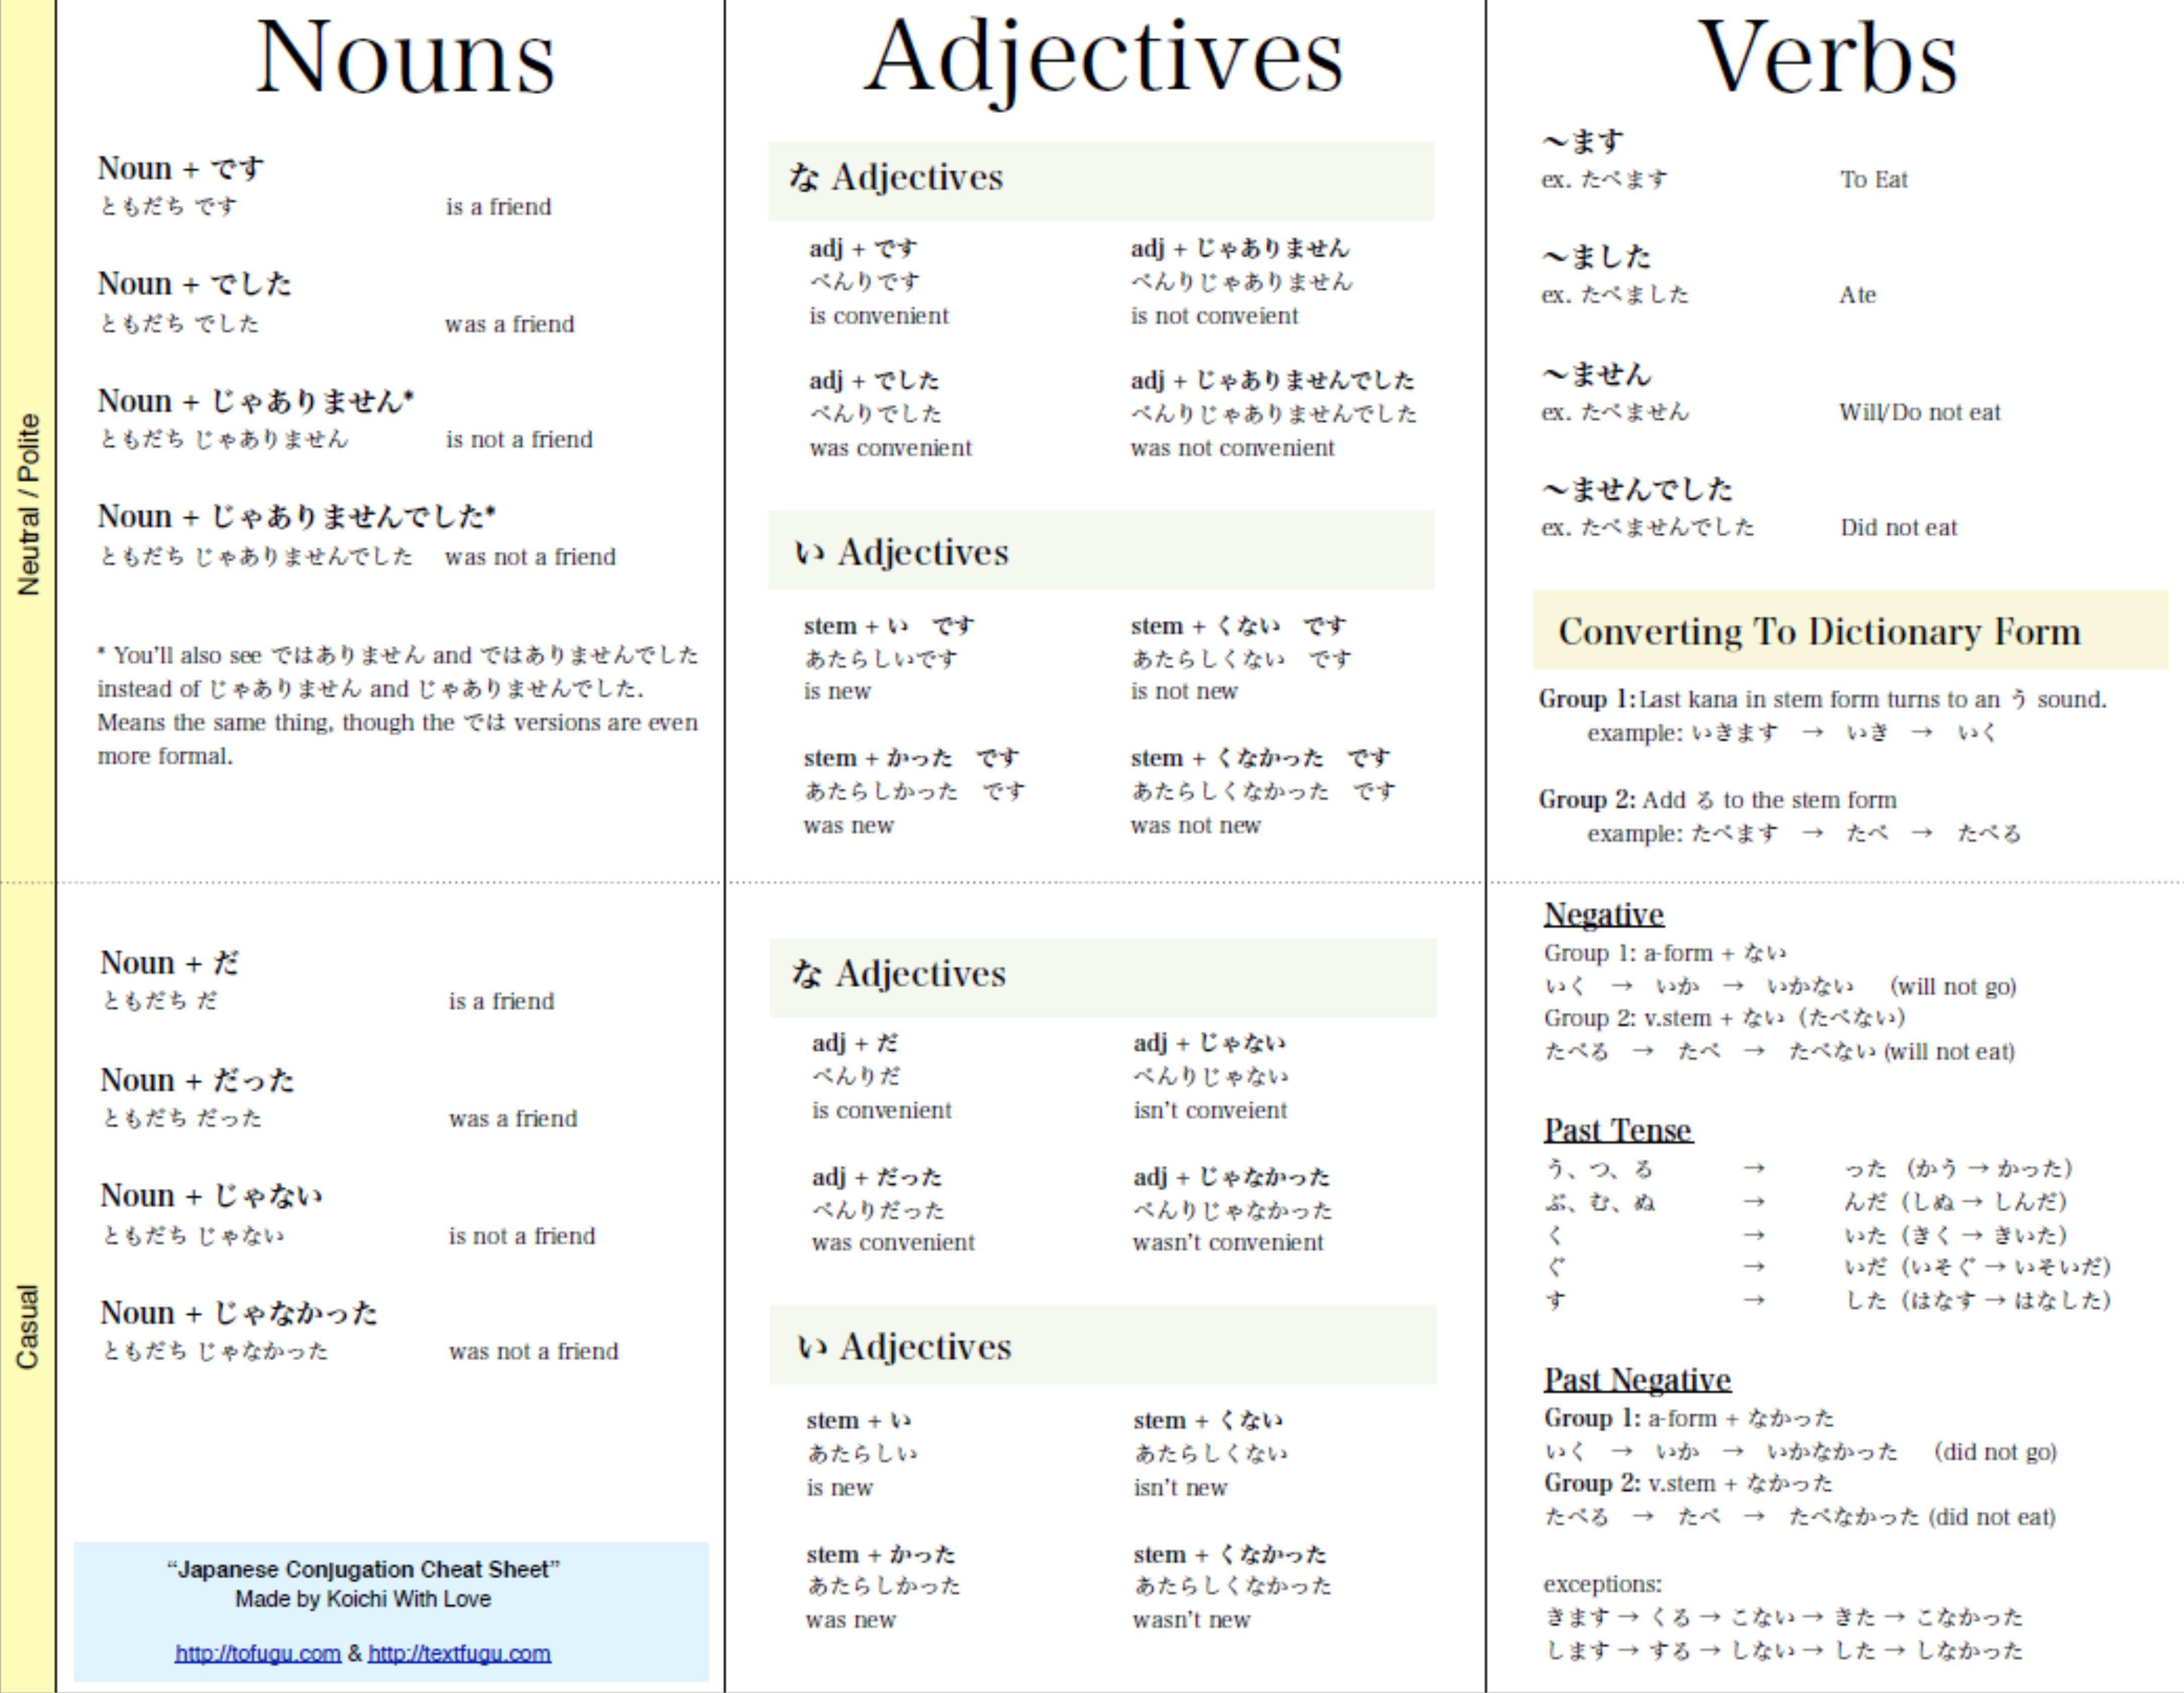 Japanese Conjugation Cheatsheet